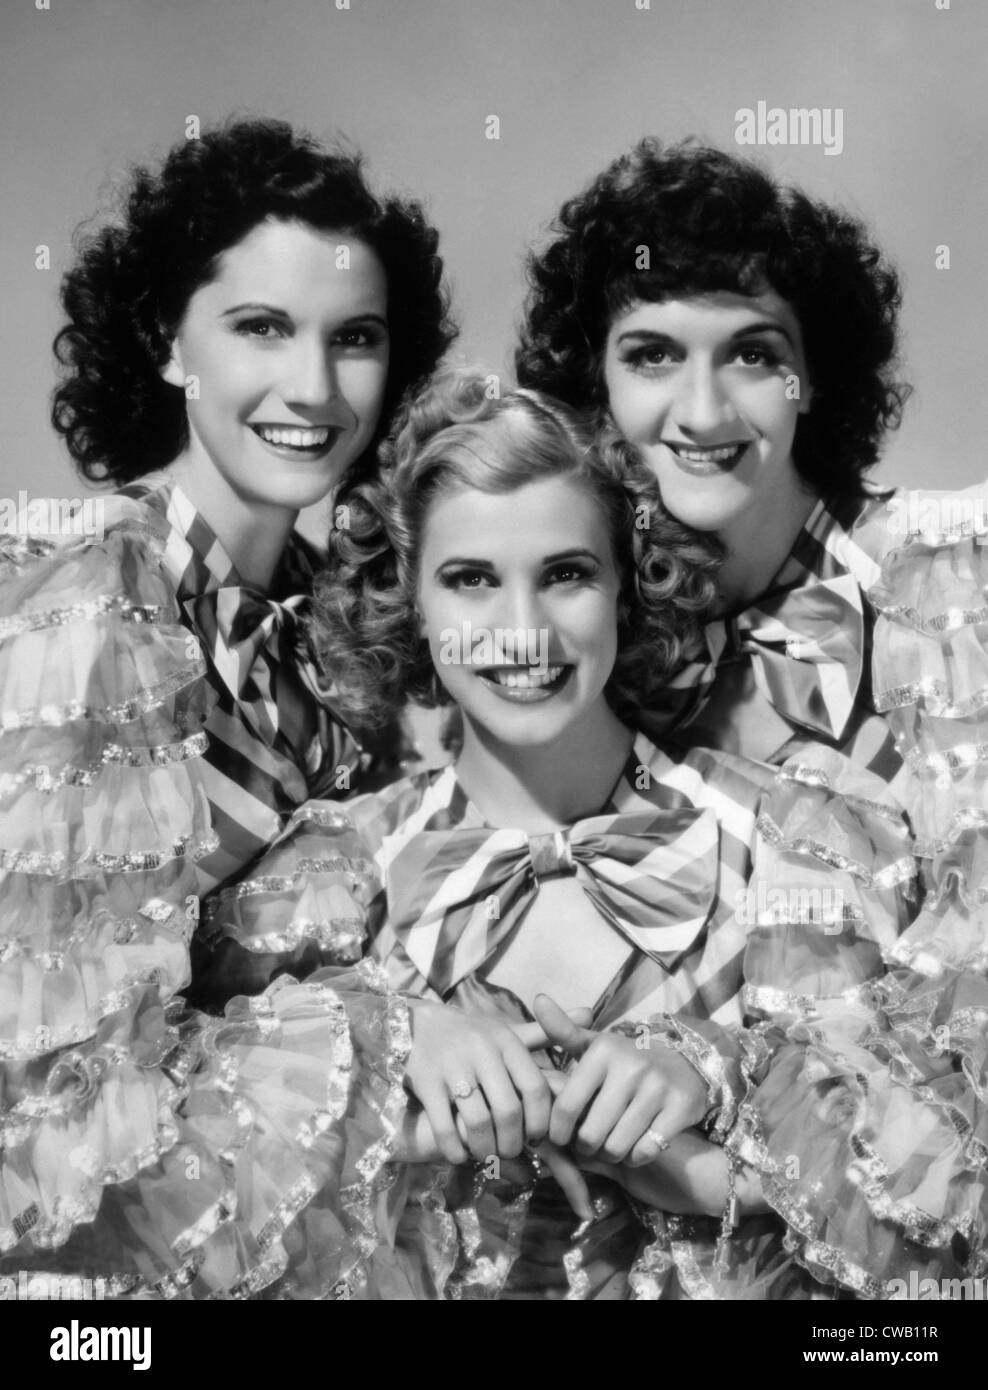 ARGENTINE NIGHTS, The Andrews Sisters, Maxene Andrews, Patty Andrews, LaVerne Andrews, 1940 - Stock Image